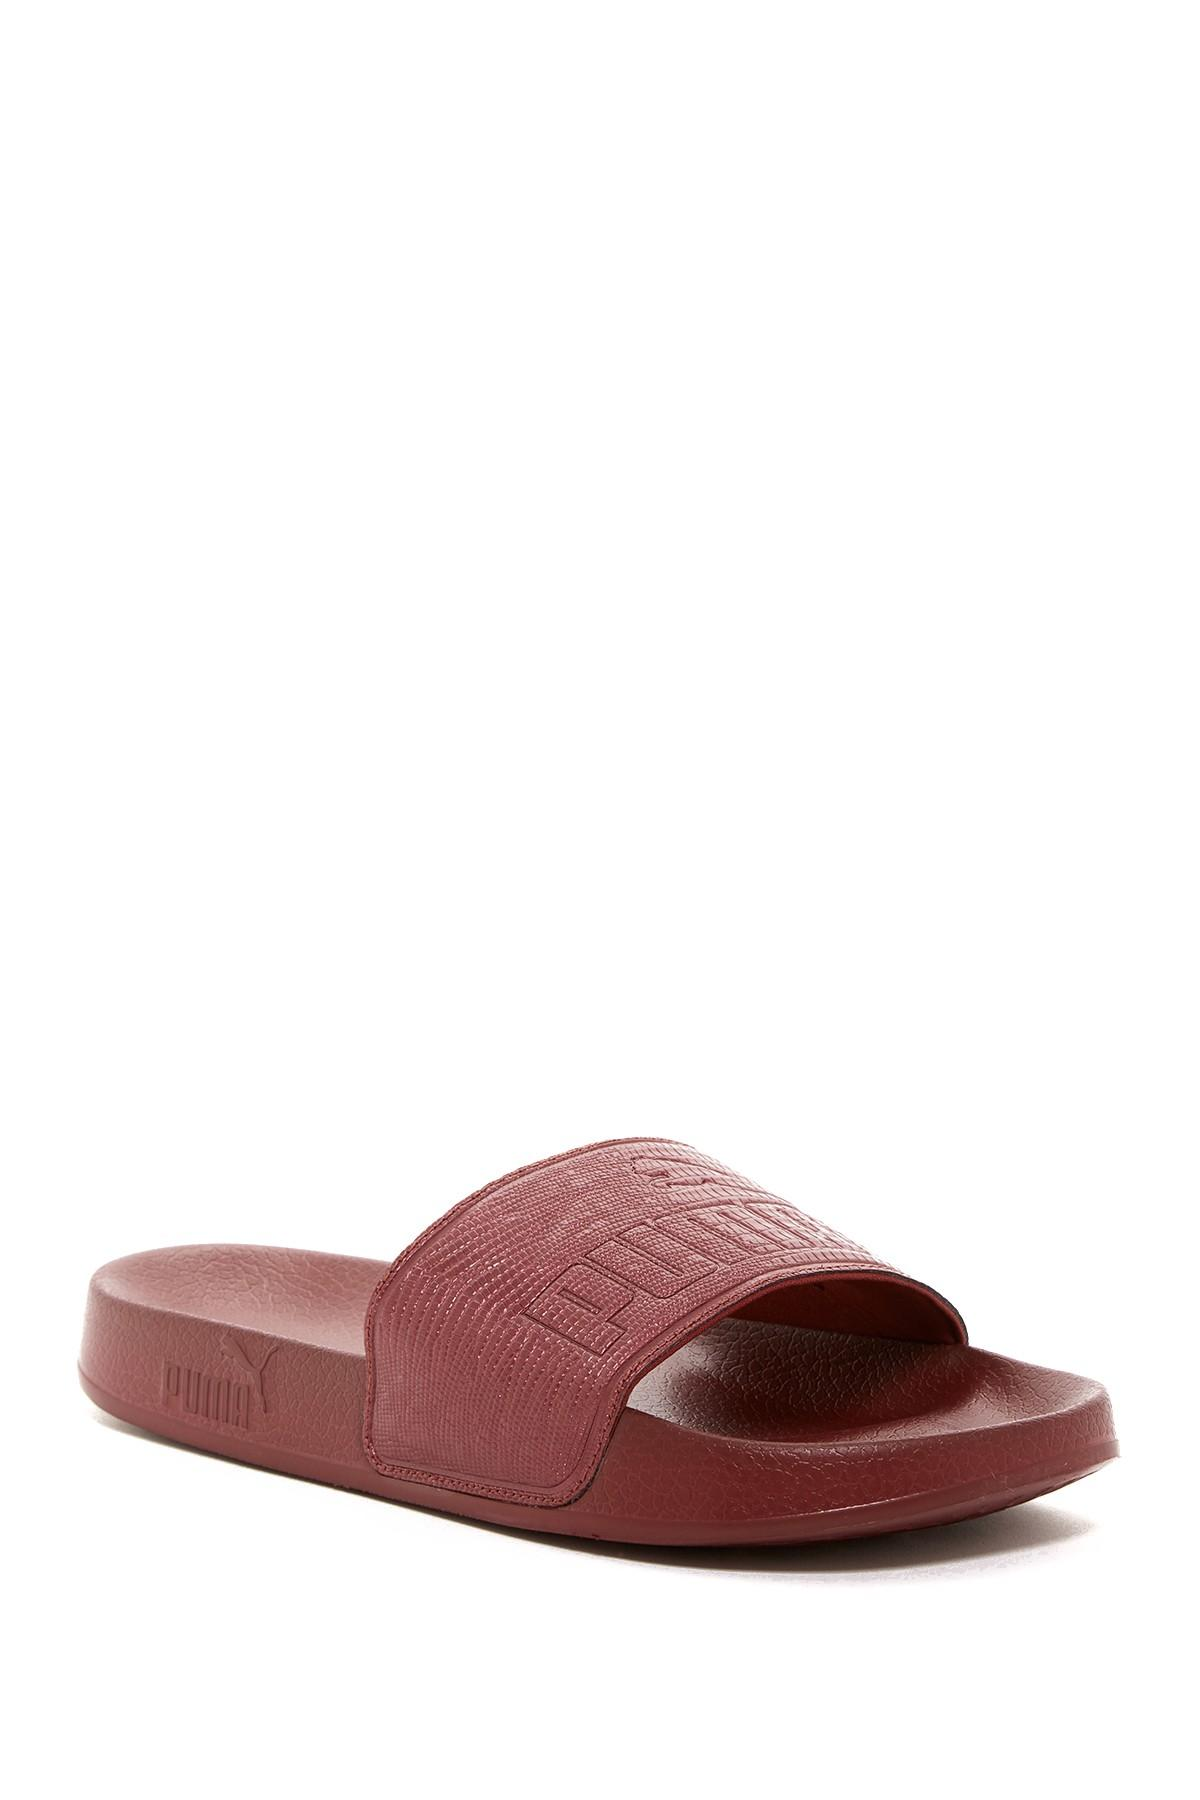 574fbbdf1be9a2 Lyst - PUMA Leadcat Embossed Slide Sandal in Red